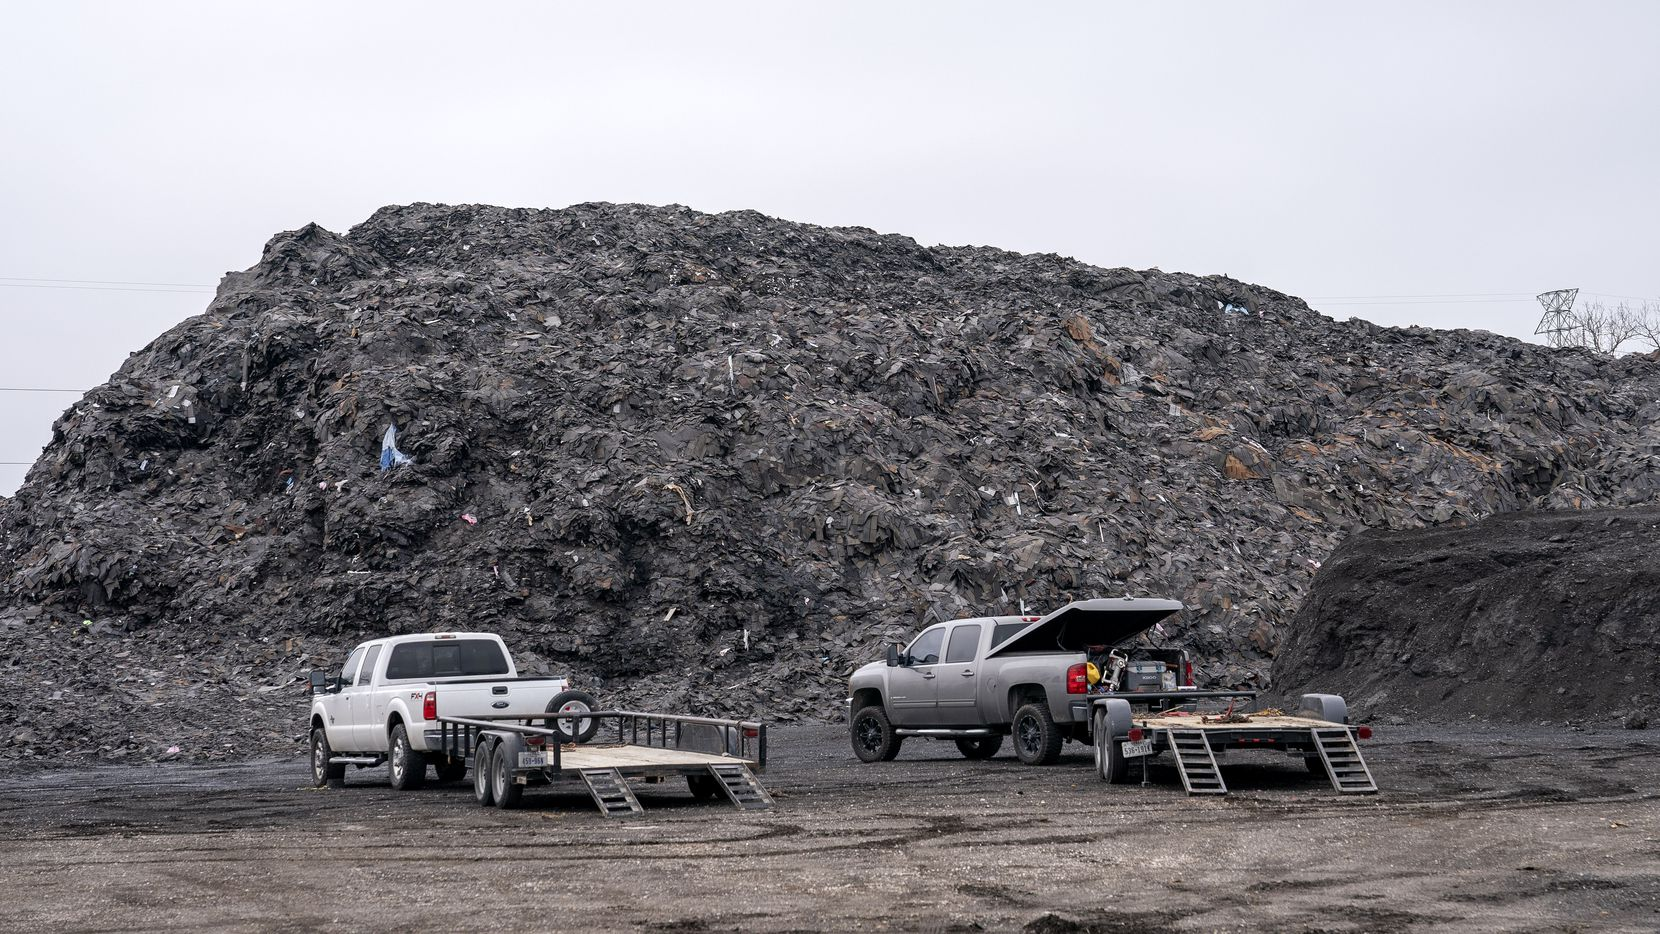 Pickups sit next to the pile of roofing shingles known as Shingle Mountain  on Dec. 15, 2020 in southern Dallas.